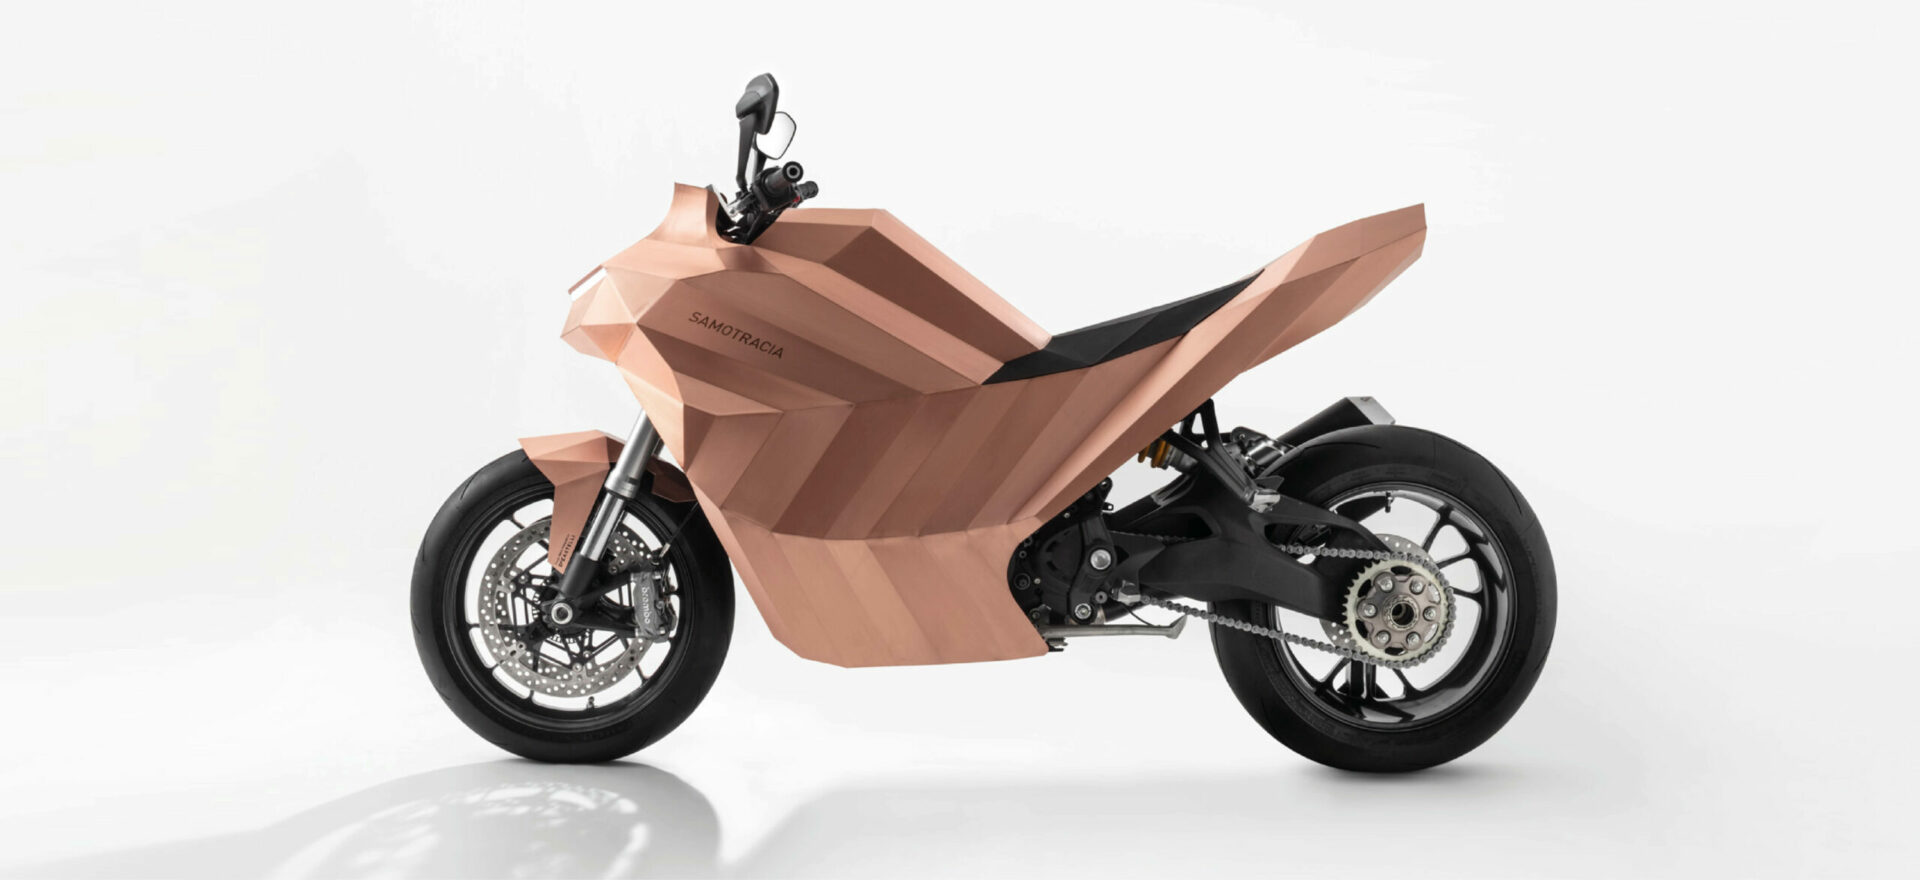 Left side of a standalone copper motorbike built on a Ducati Monster chassis in a white background.